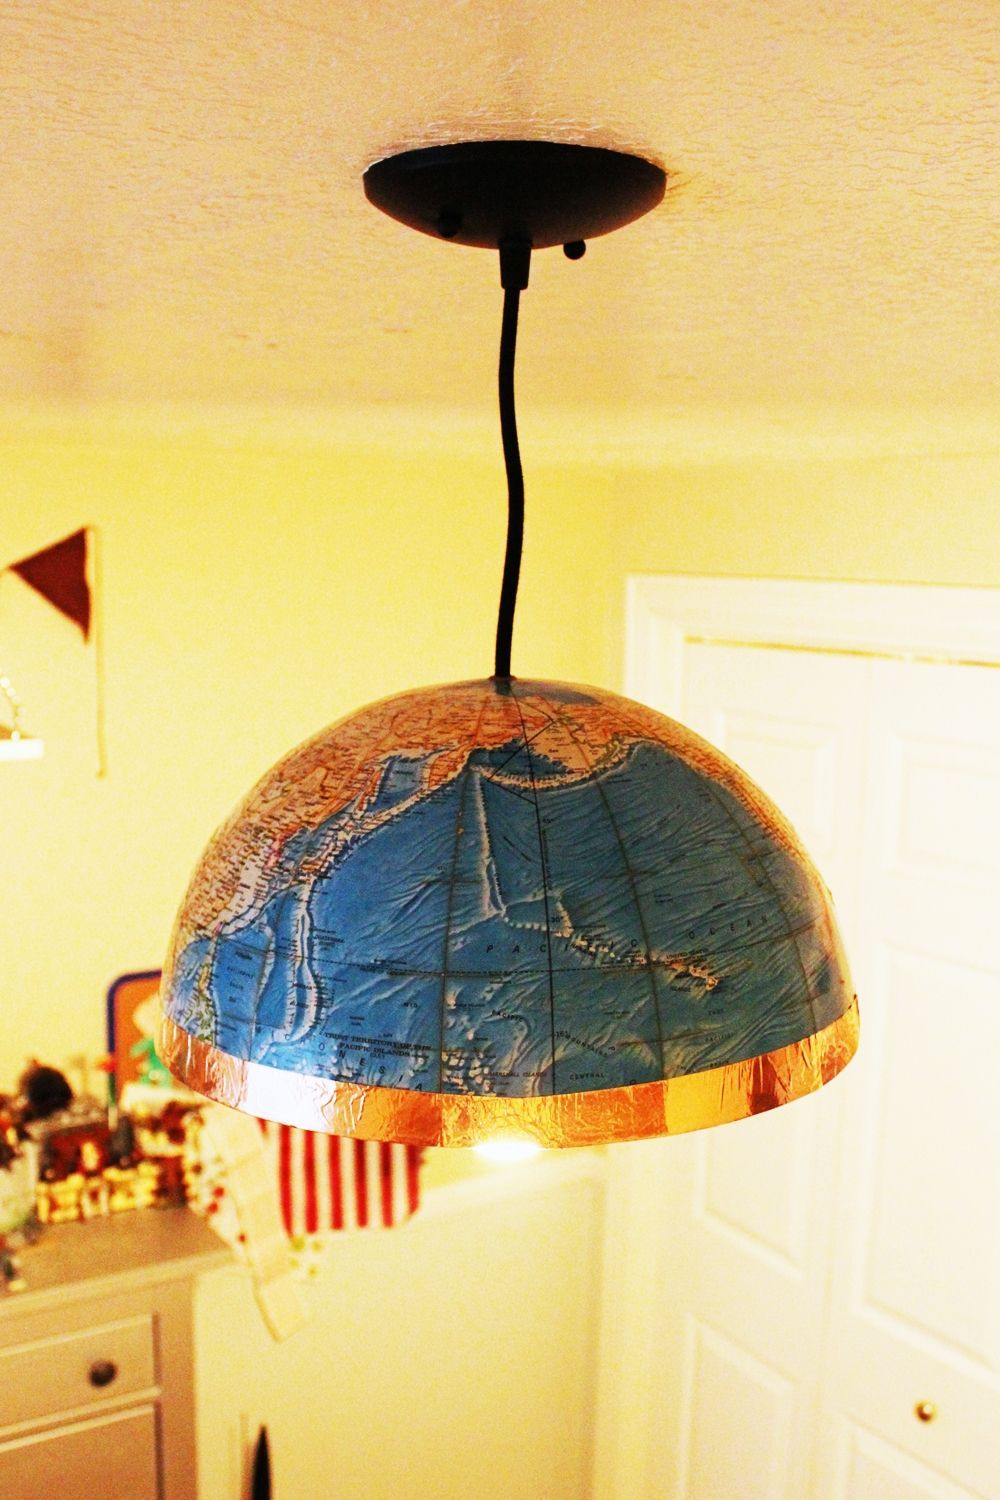 Diy globe pendant light a quick and easy lighting upgrade diy globe pendant light aloadofball Gallery